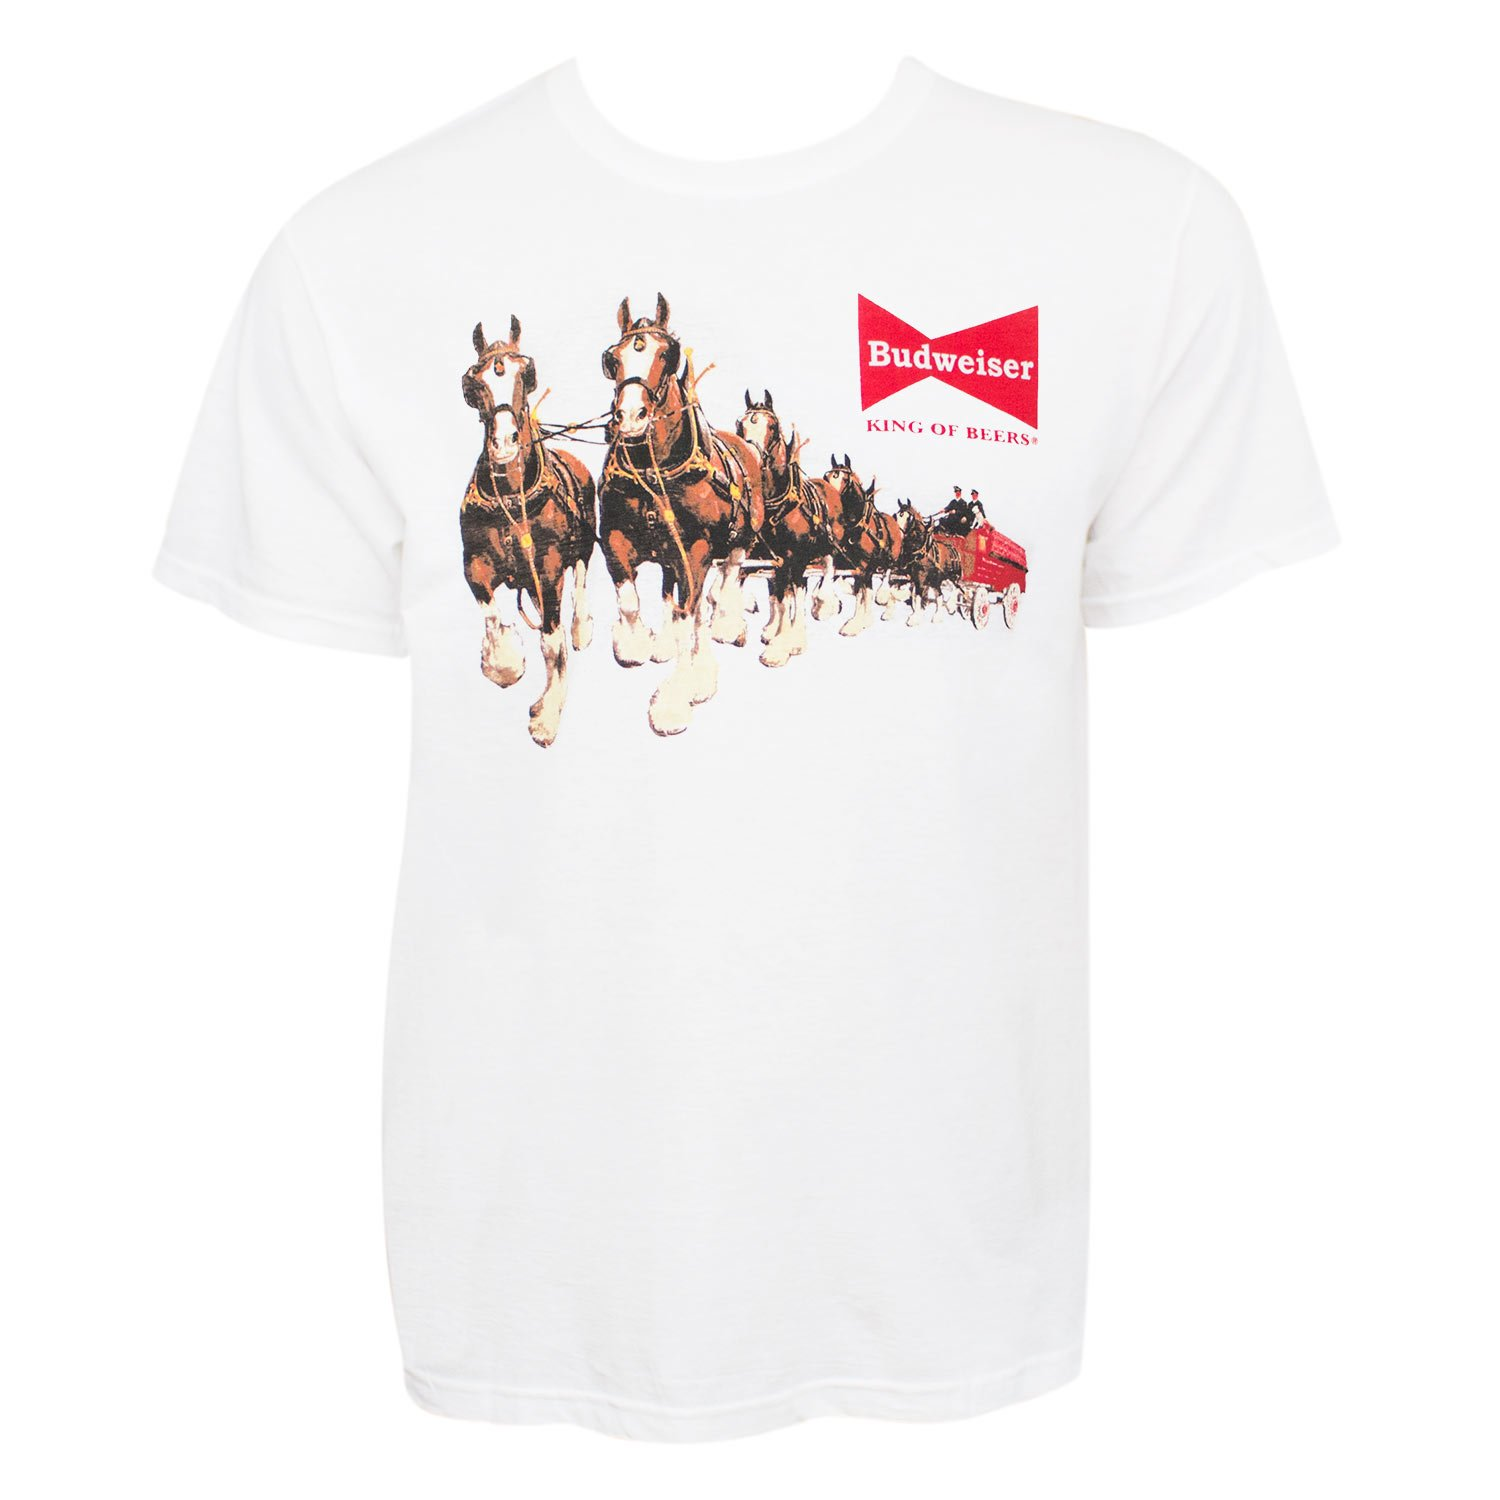 Budweiser Clydesdales Tee Shirt White